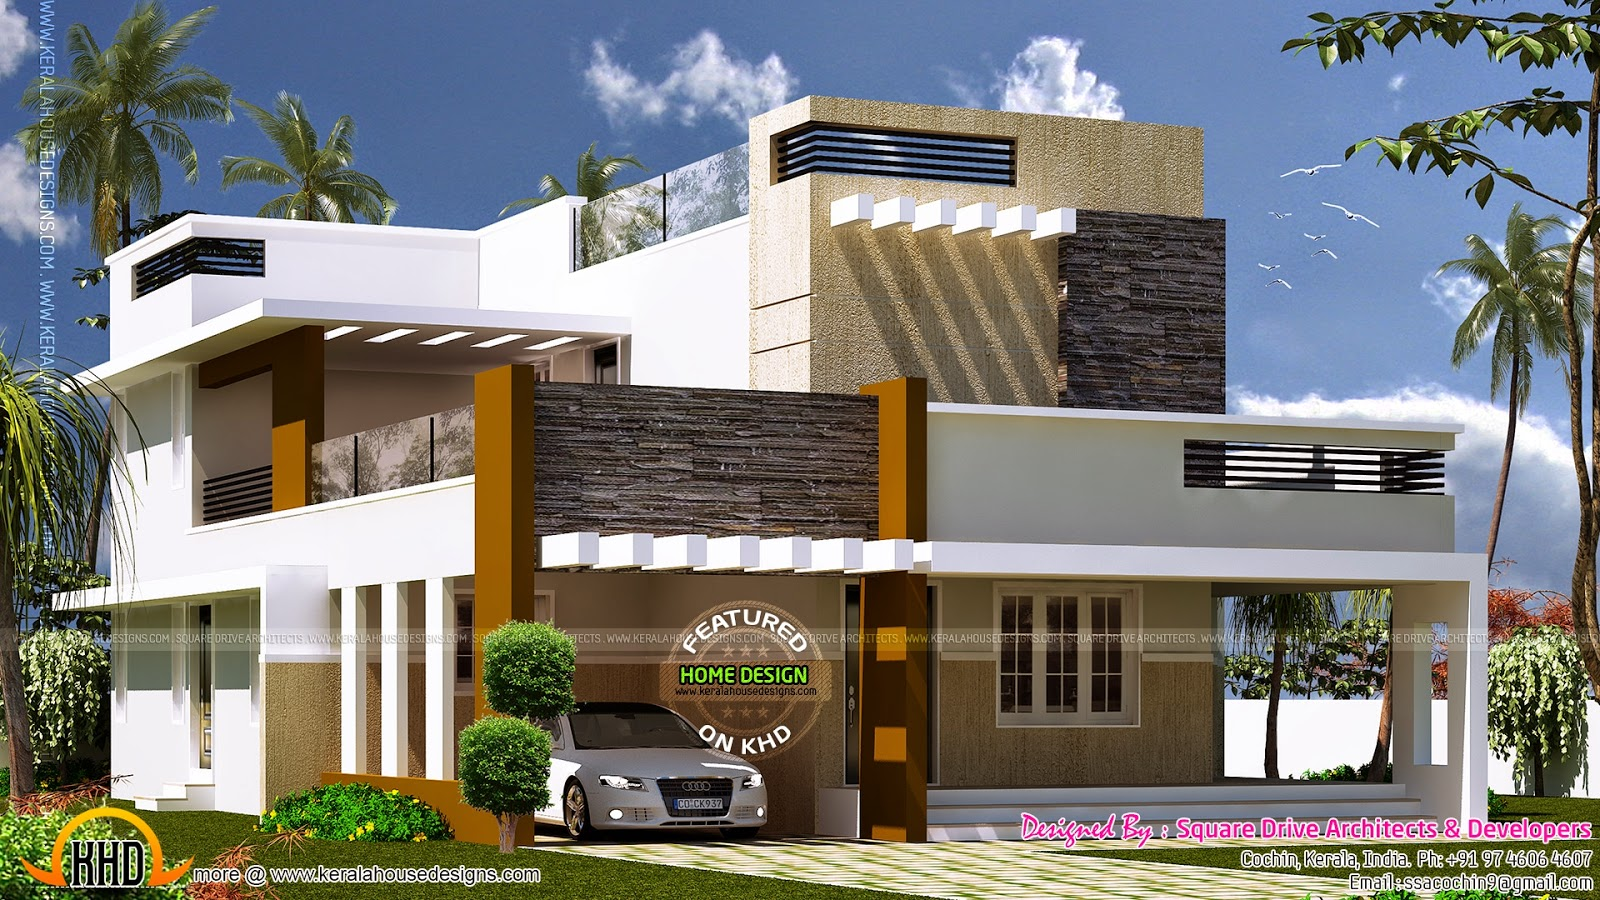 exterior design of contemporary villa kerala home design On modern villa exterior design